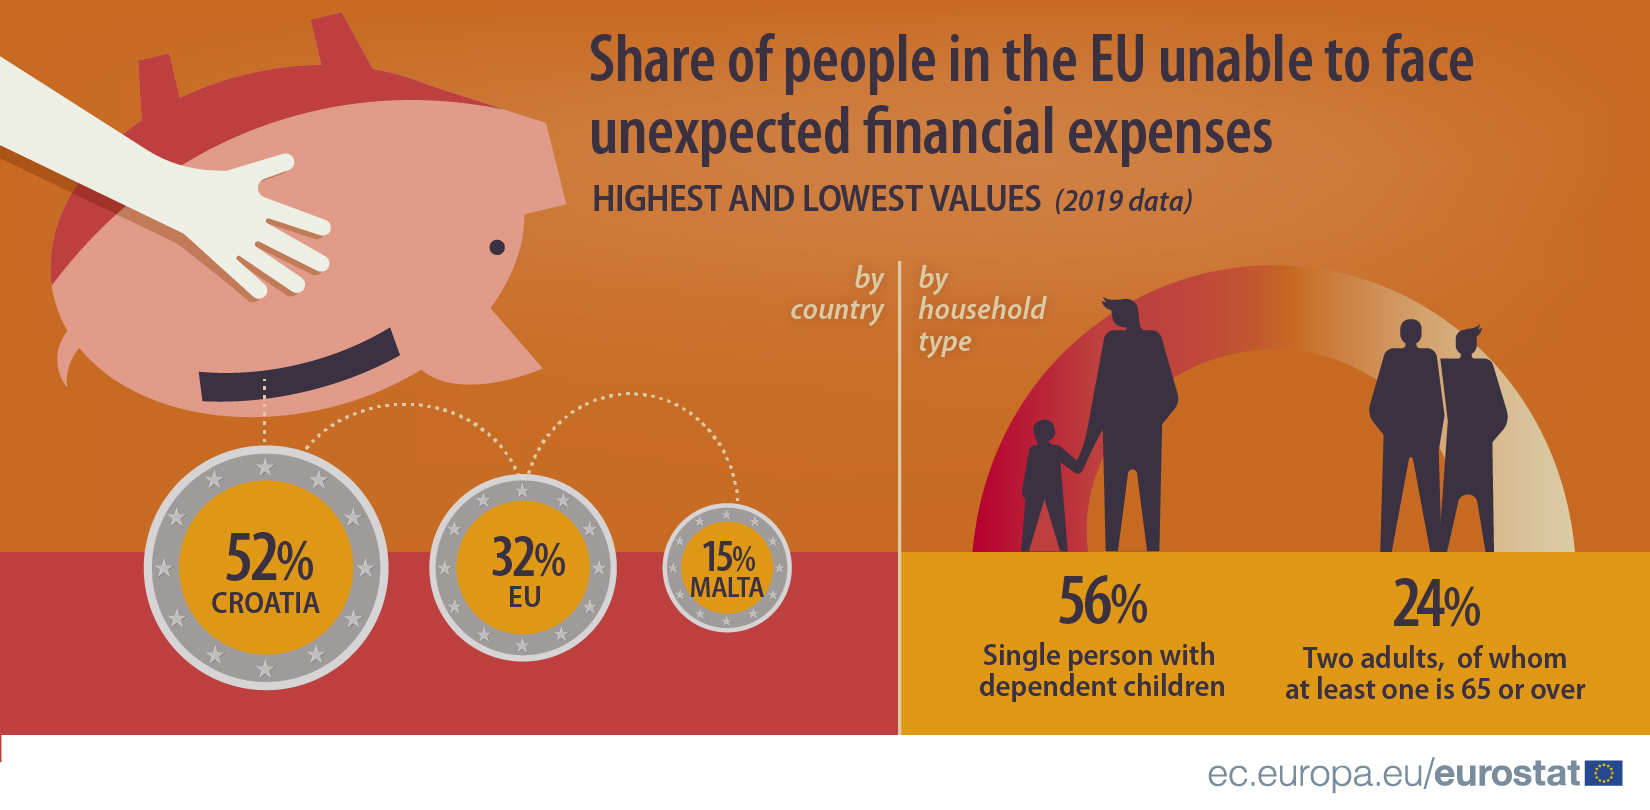 Share of people in the EU unable to face unexpected financial expenses